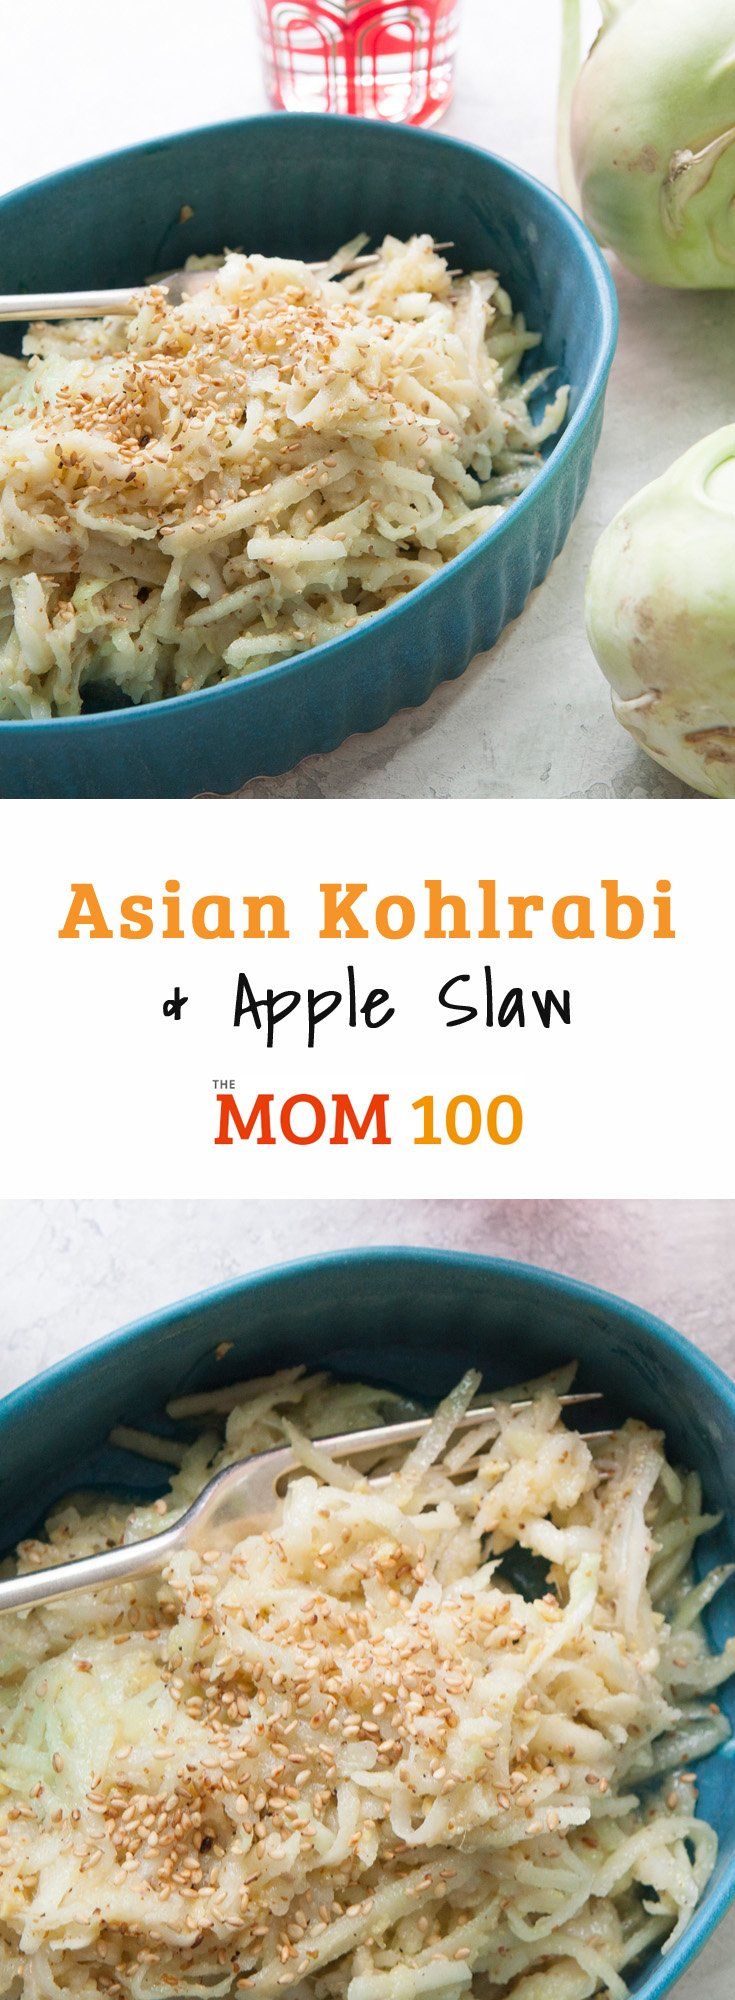 This Asian Kohlrabi and Apple Slaw contains many of the flavors my family is in love with, and it's really zippy and refreshing.